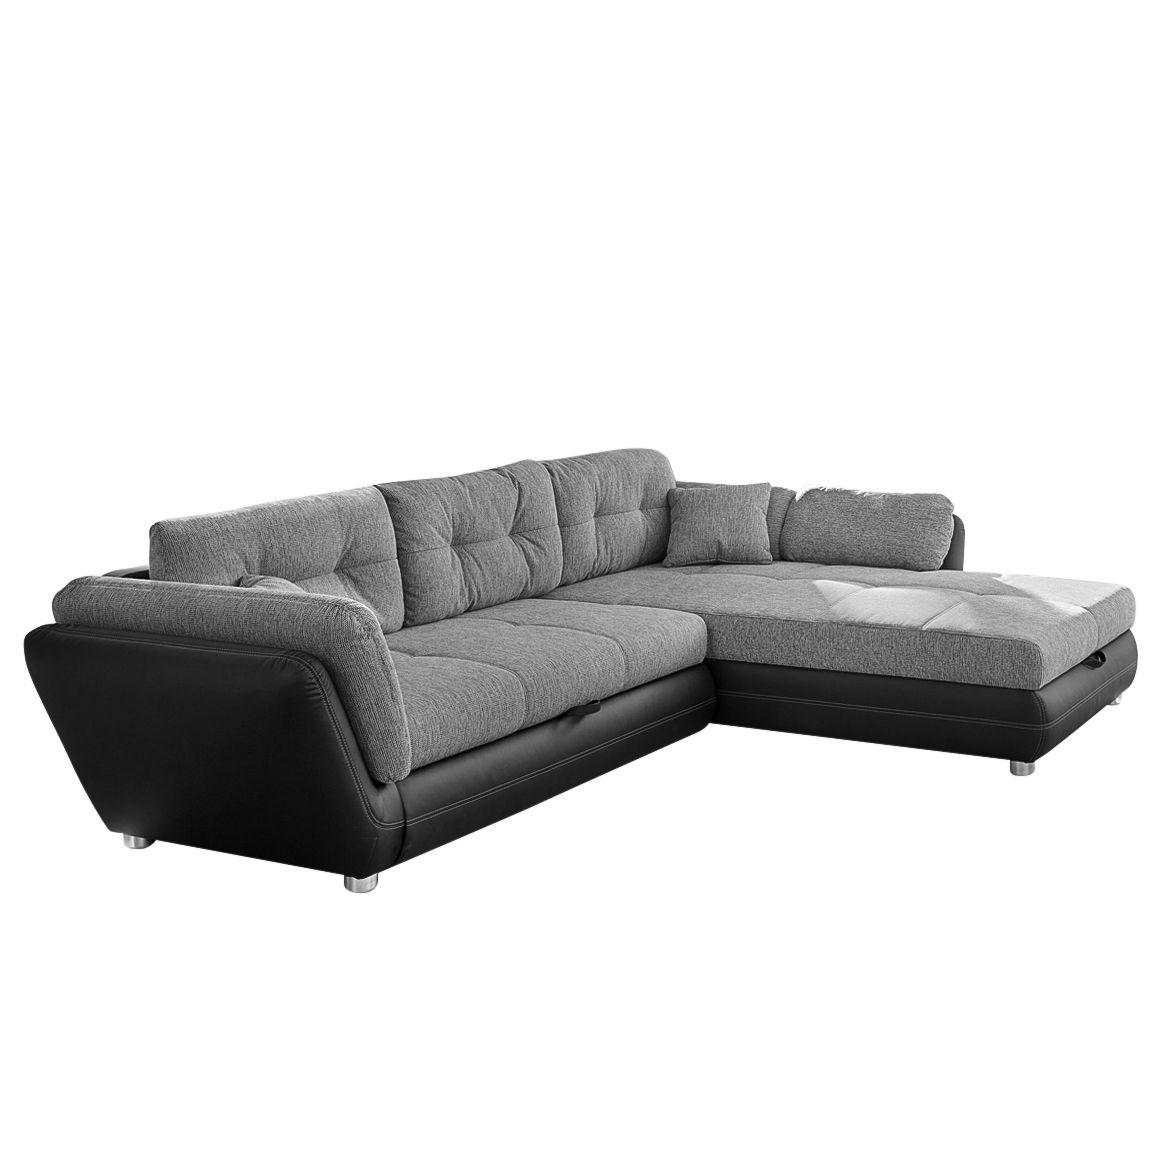 ecksofa mit schlaffunktion ikea super ecksofa mit schlaffunktion ikea ikea schlafzimmer. Black Bedroom Furniture Sets. Home Design Ideas